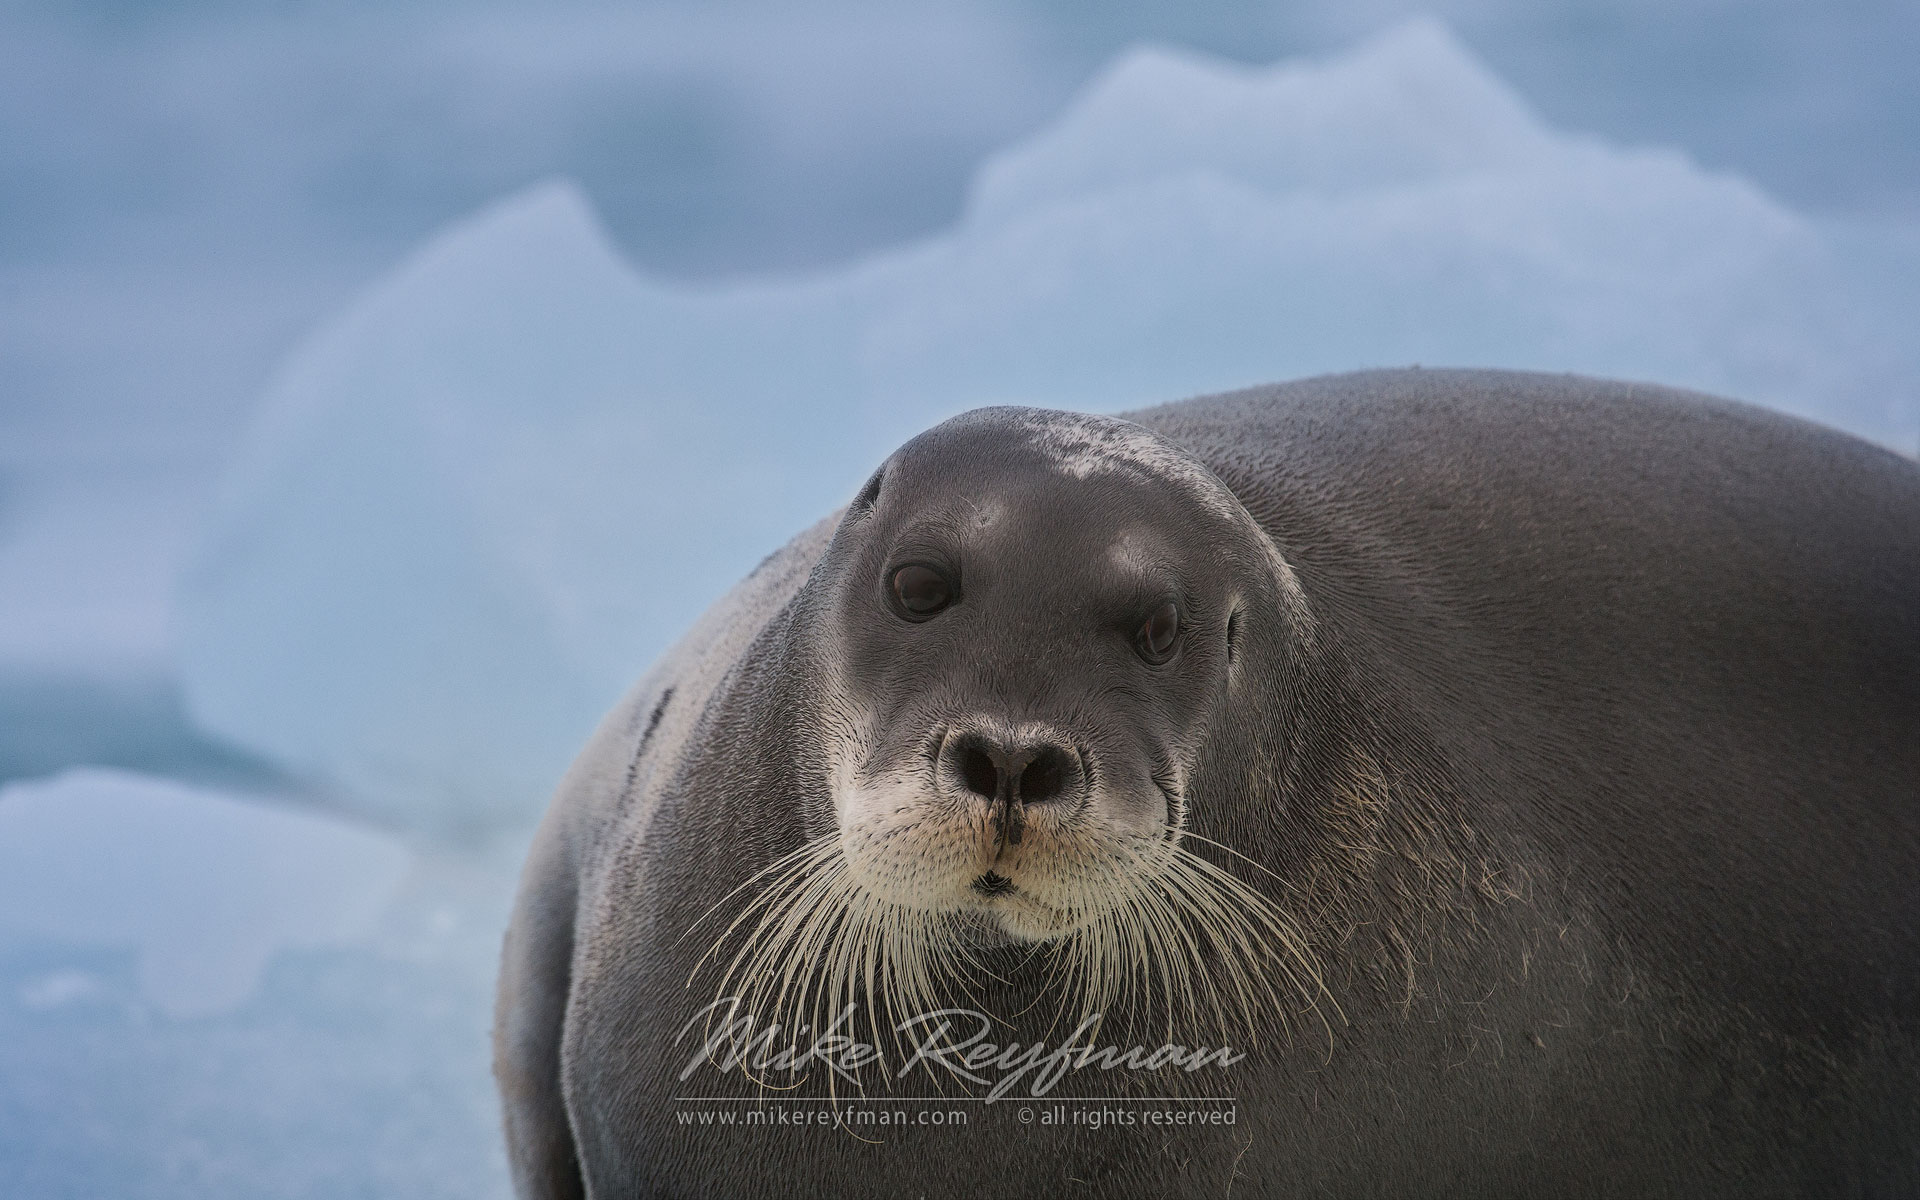 Bearded Seal (Erignathus barbatus) on an ice floe. Svalbard (Spitsbergen) Archipelago, Norway. - Wildlife-Svalbard-Spitsbergen-Norway - Mike Reyfman Photography